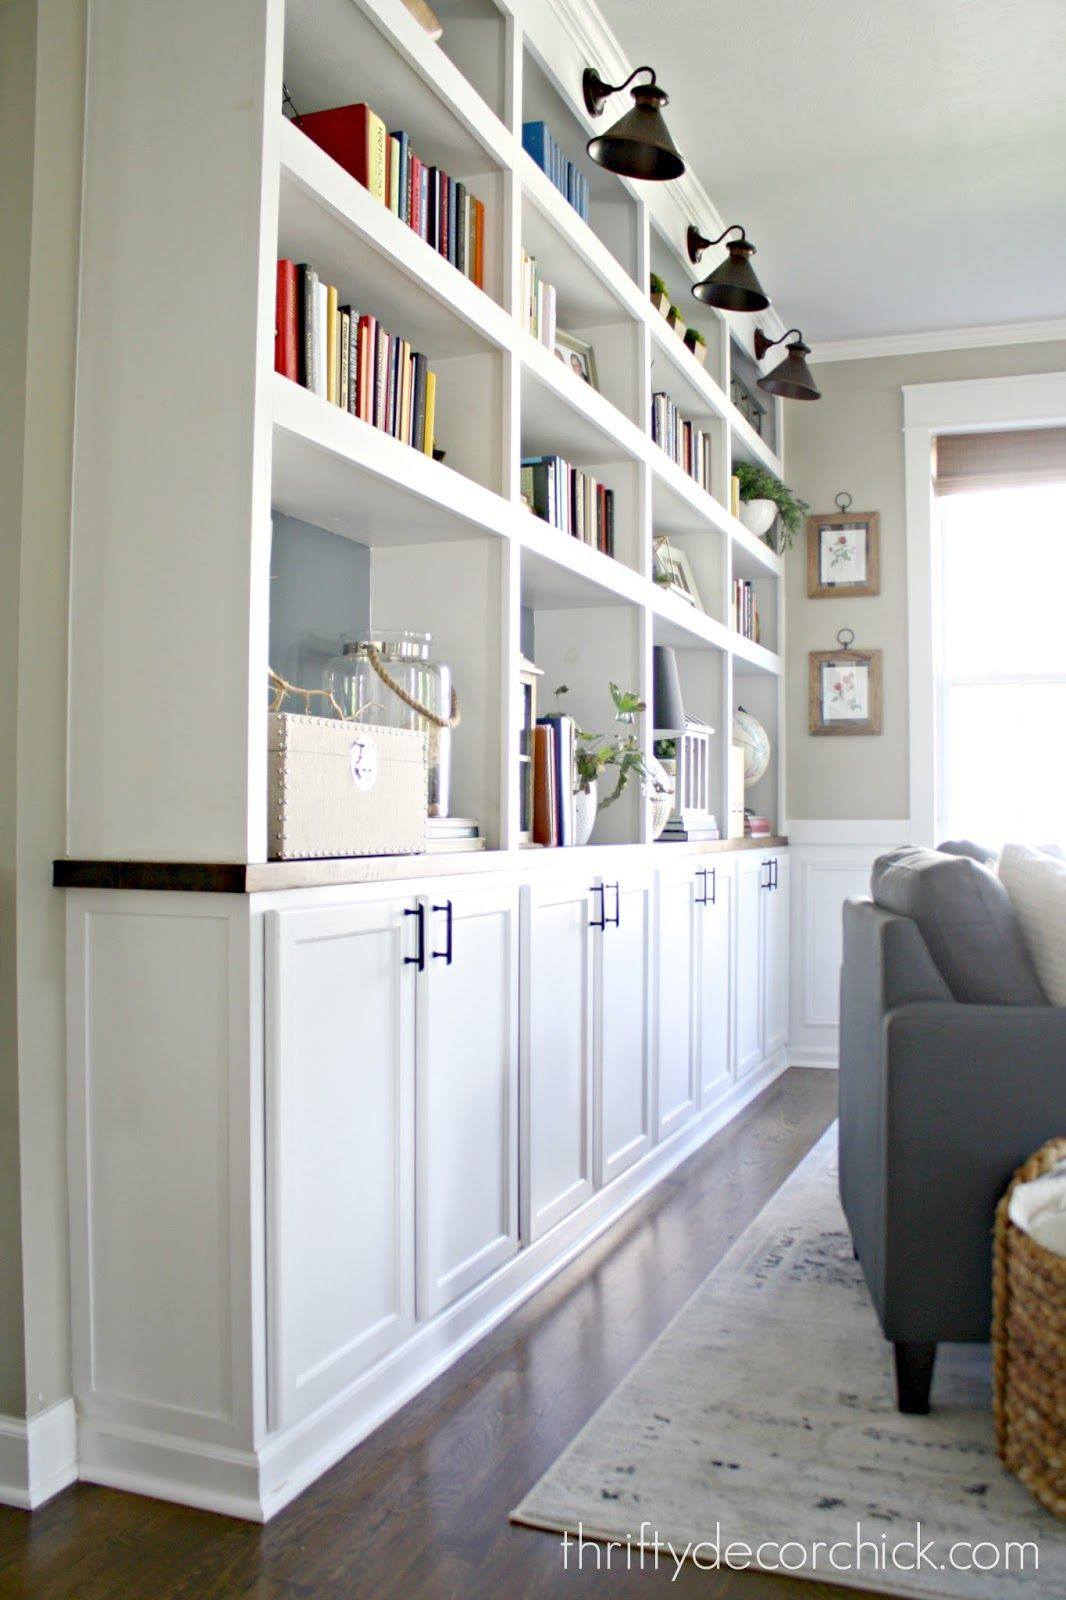 diy built ins with kitchen cabinets - How To Make Custom Built In Bookshelves